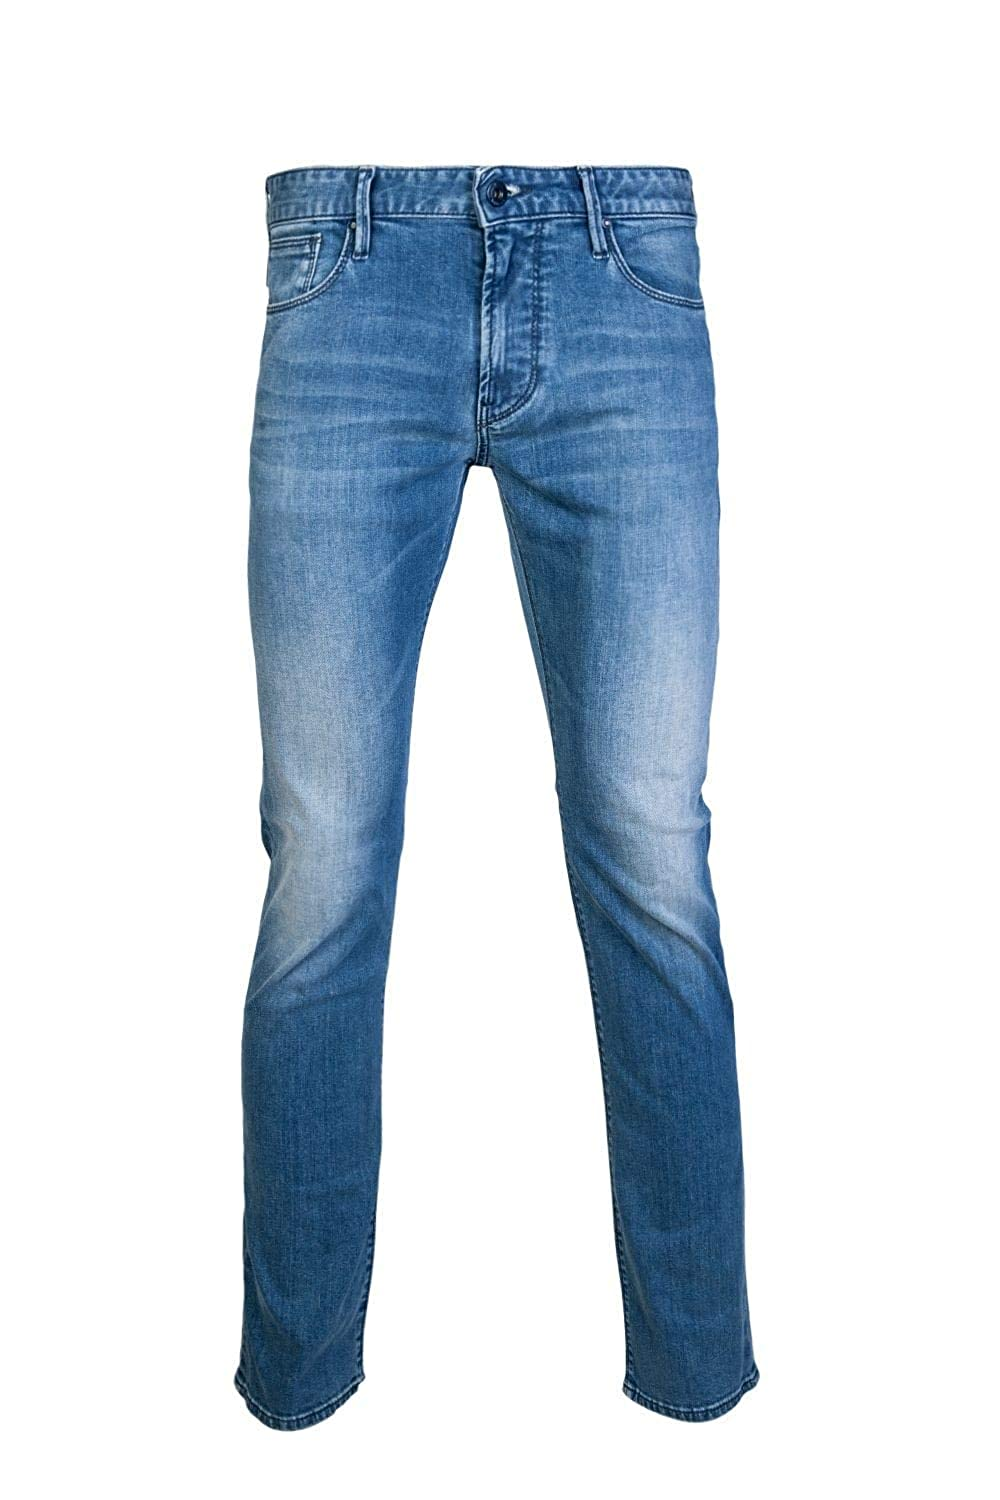 07a808434b Emporio Armani Men's Jeans Denim blu: Amazon.co.uk: Clothing